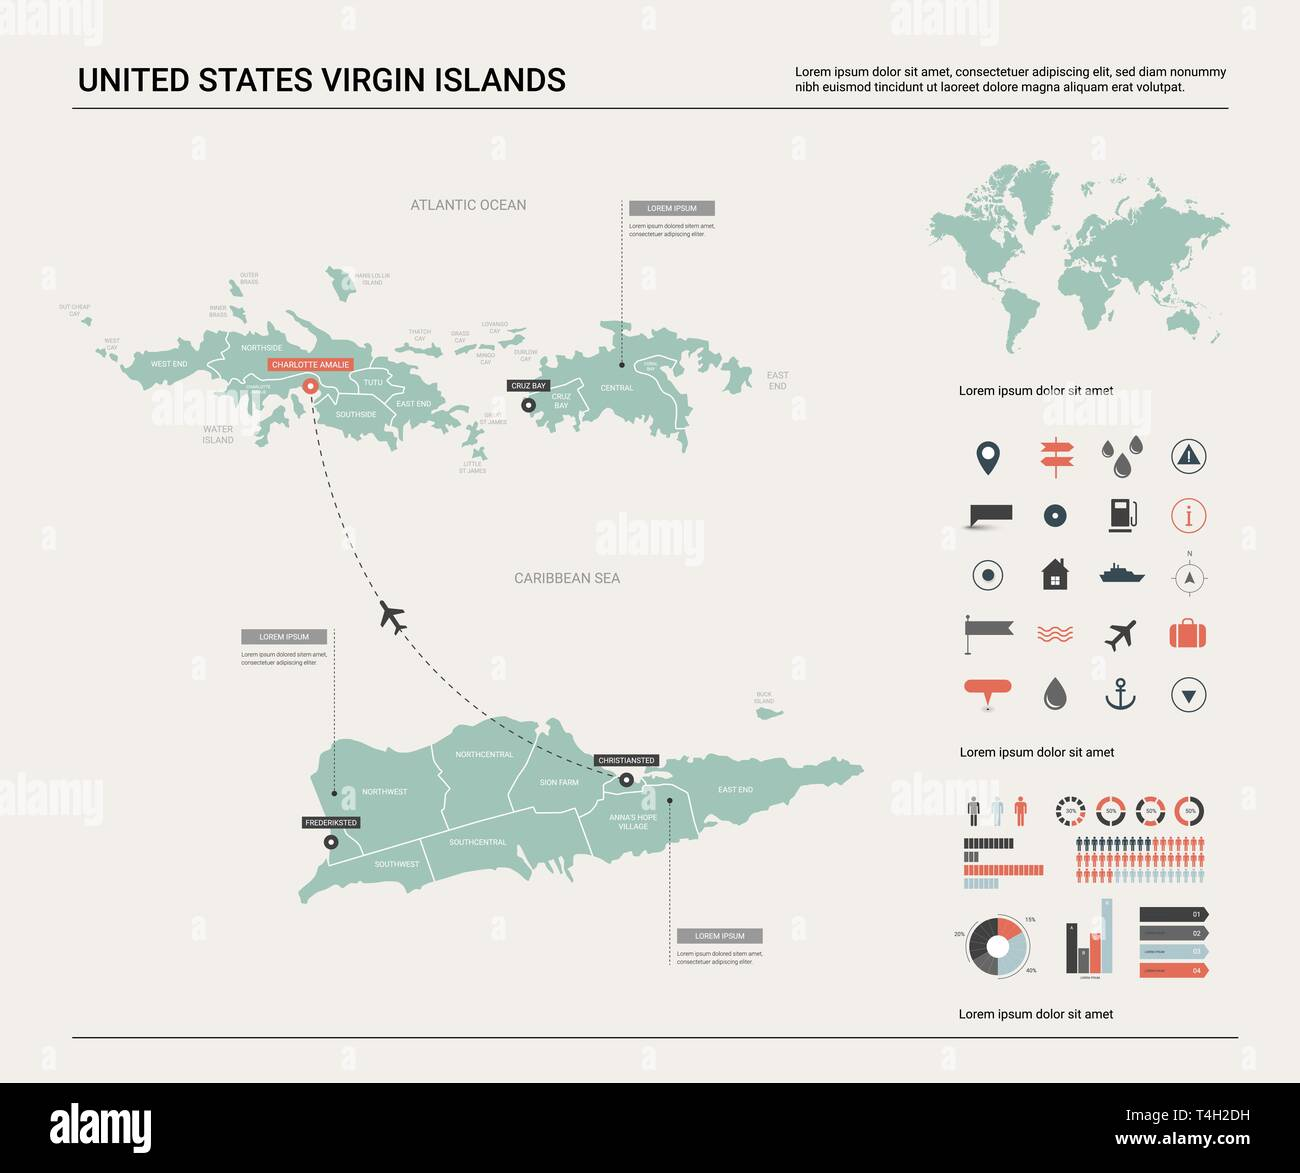 Picture of: Vector Map Of United States Virgin Islands High Detailed Country Map With Division Cities And Capital Charlotte Amalie Political Map World Map Stock Vector Image Art Alamy